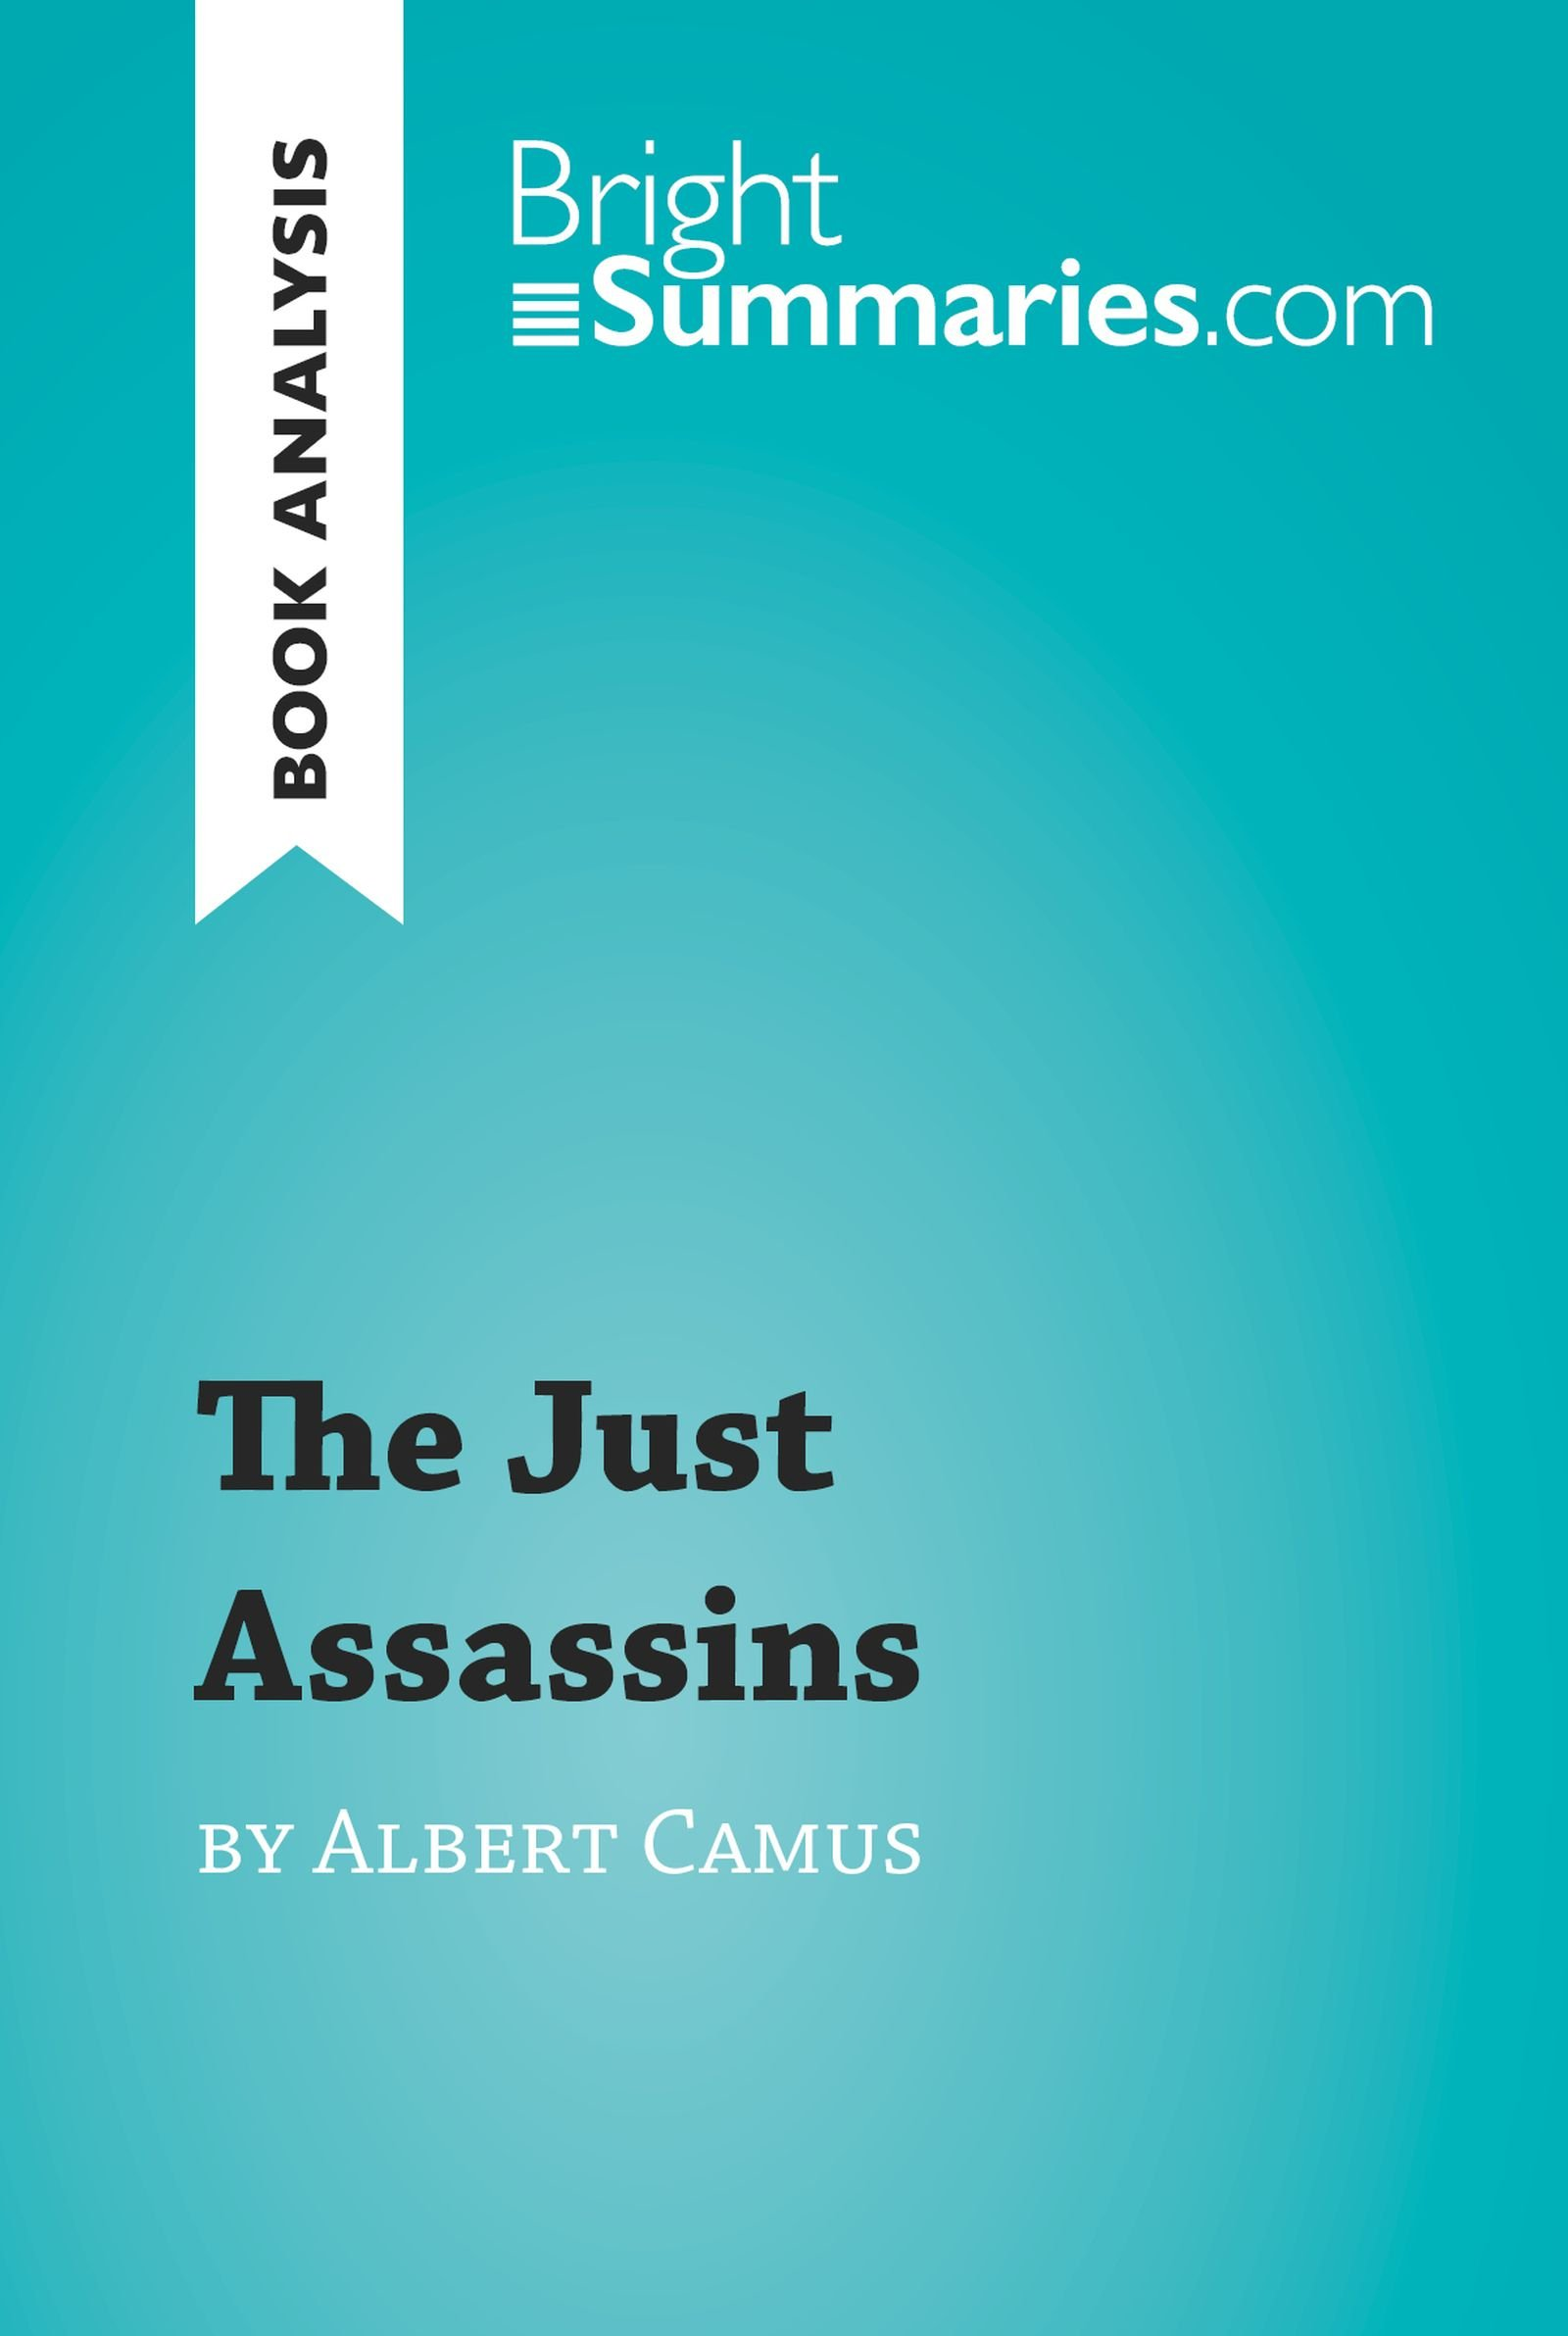 The Just Assassins By Albert Camus  Book Analysis   Detailed Summary Analysis And Reading Guide  BrightSummaries.com   English Edition